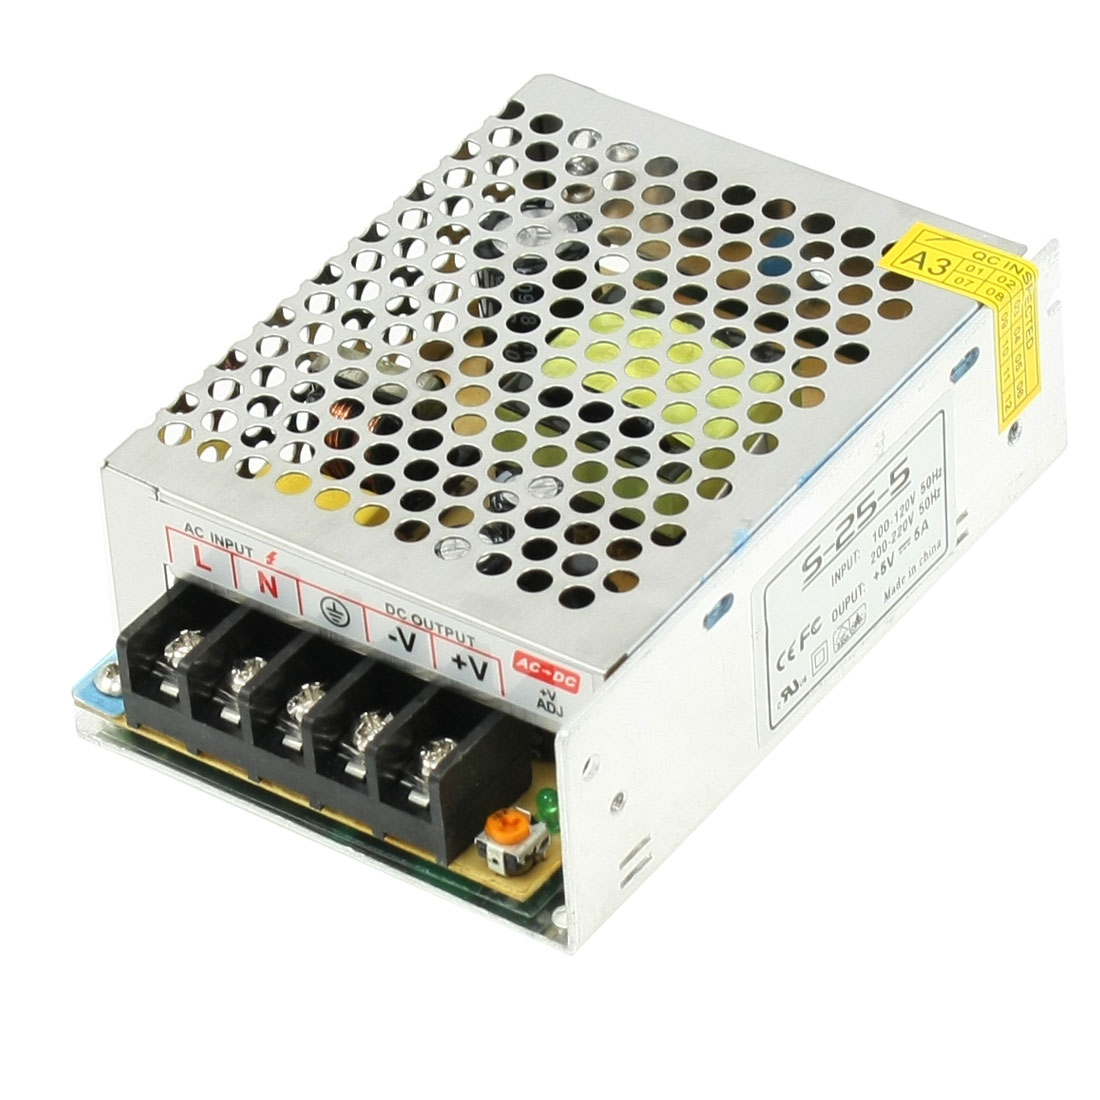 AC 110V 220V to DC 5V 5A 25W Switching Power Supply Converter for LED Strip Light